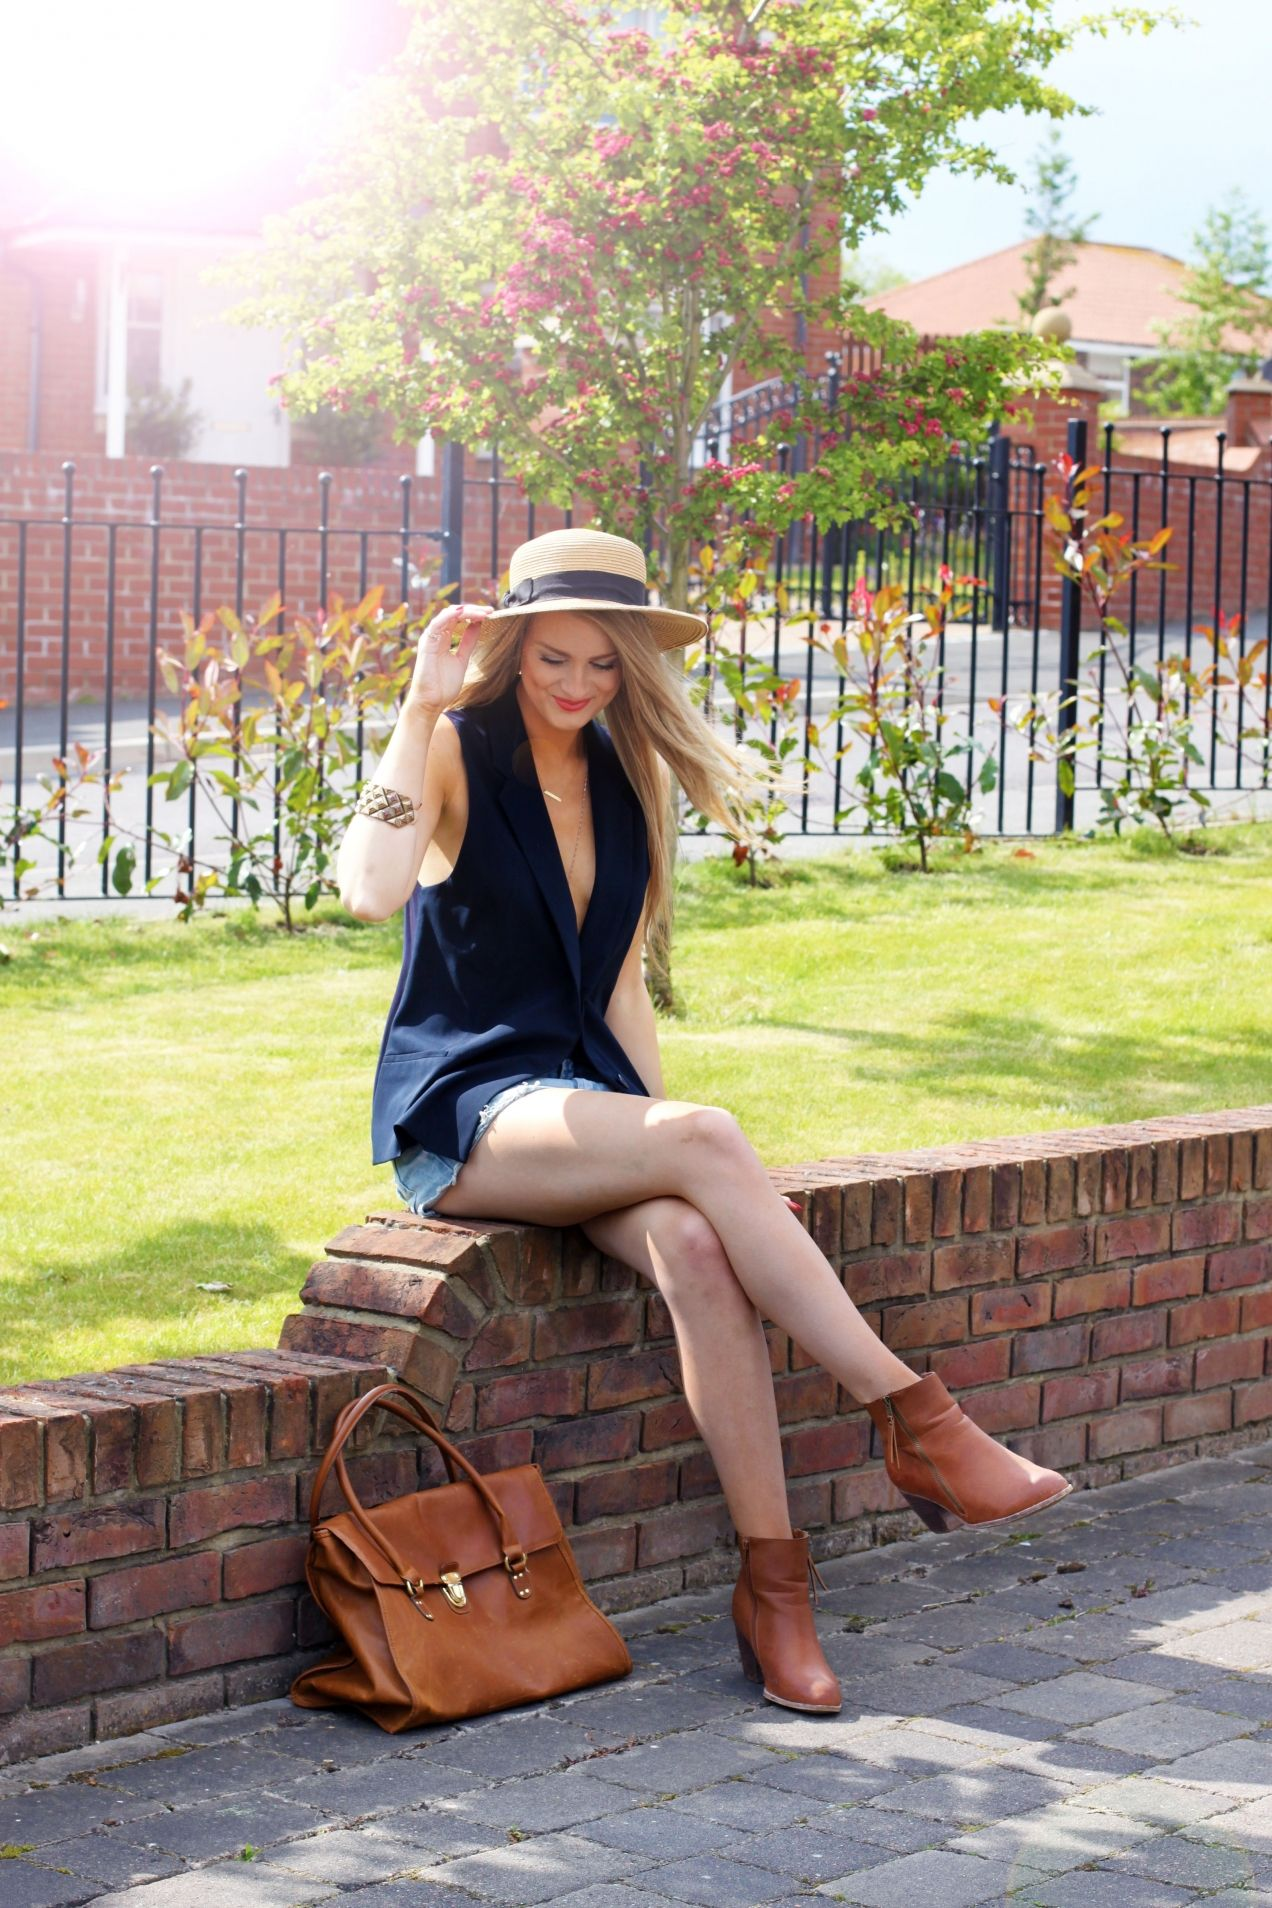 #HATGIRL by Nicki Elise Elwin of The Truth Diaries || #thetruthdiaries #ttd #zara #fashion #style #fashionblogger #fbloggers #fashionbloggers ||